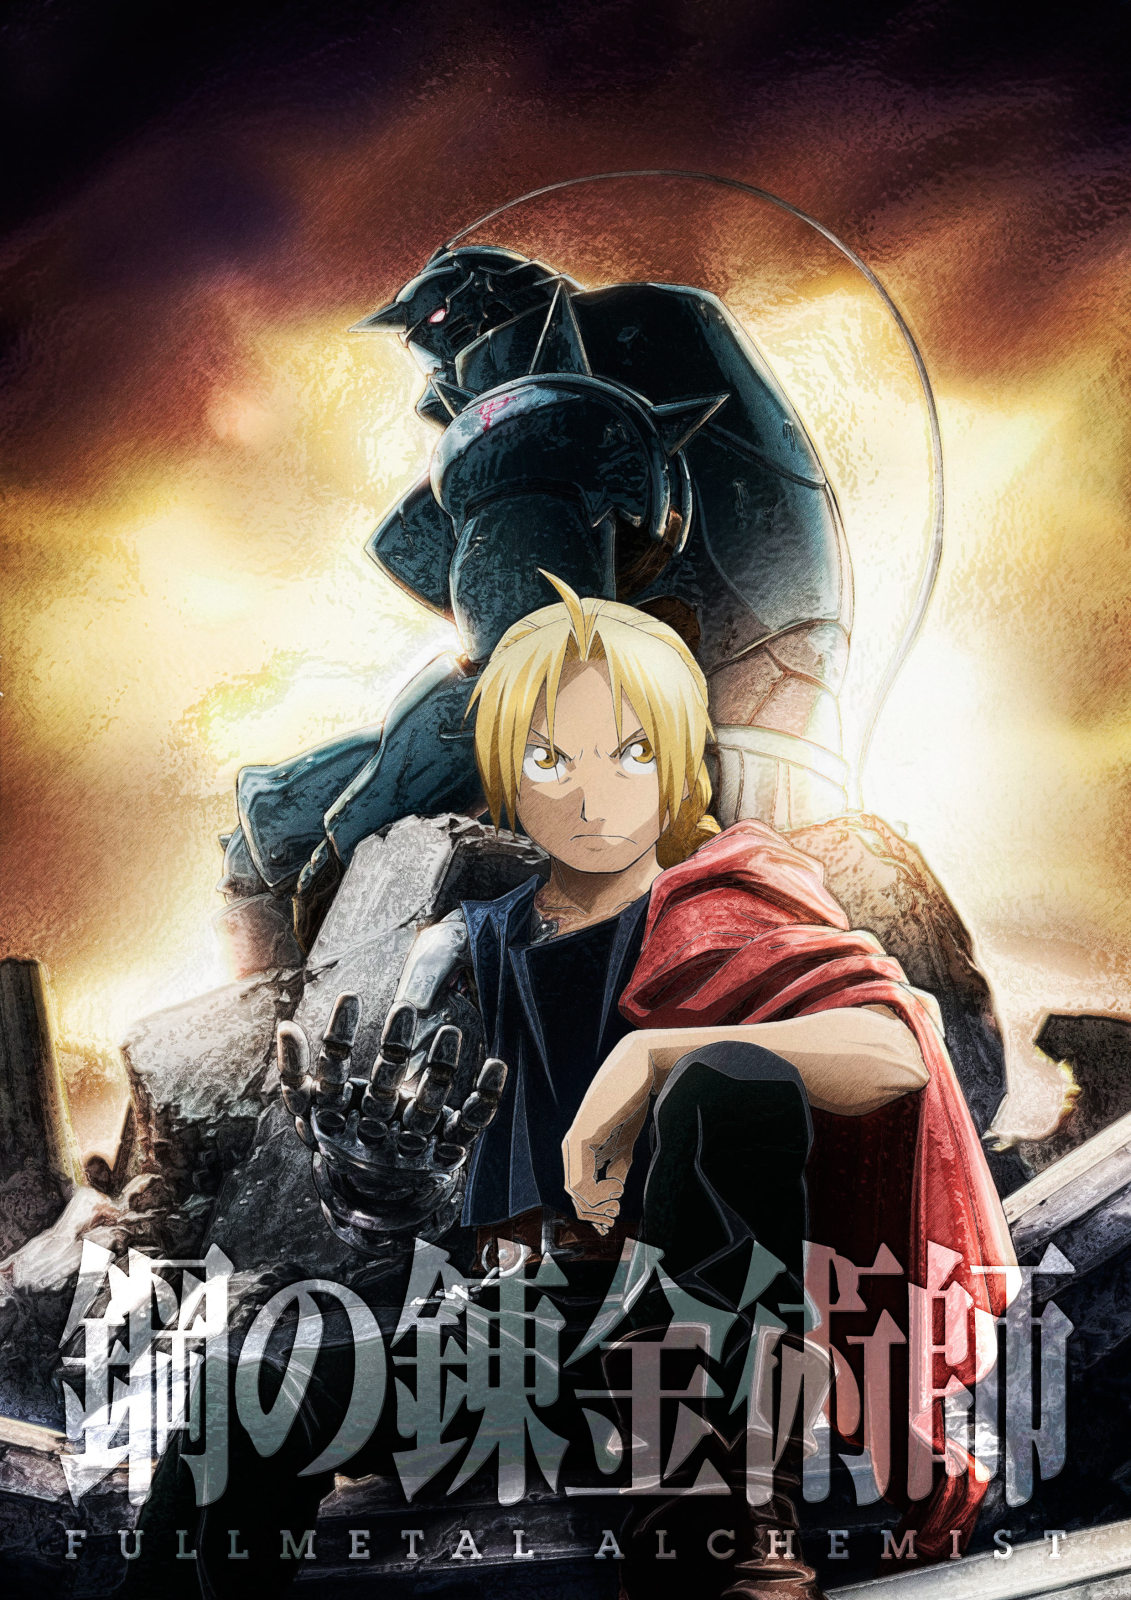 mejores posters anime 2019